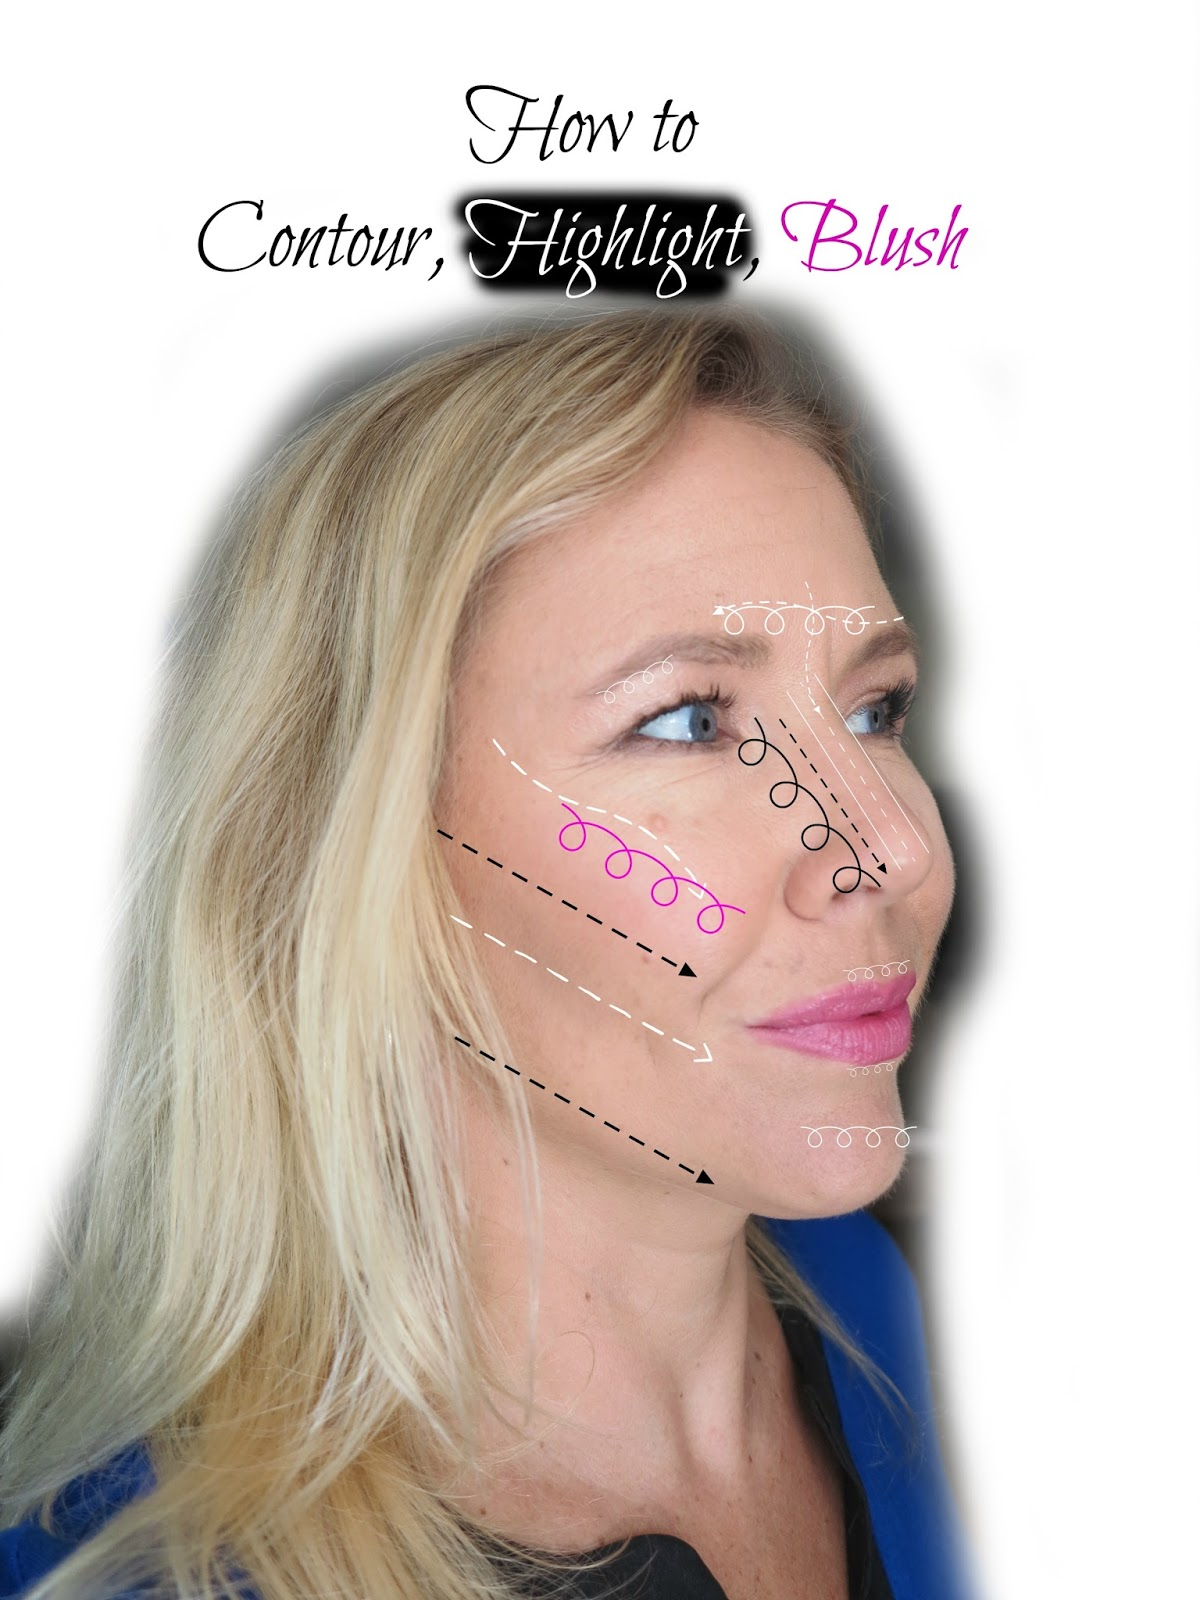 How To Contour Mature Skin (using The Kat Von D Shade